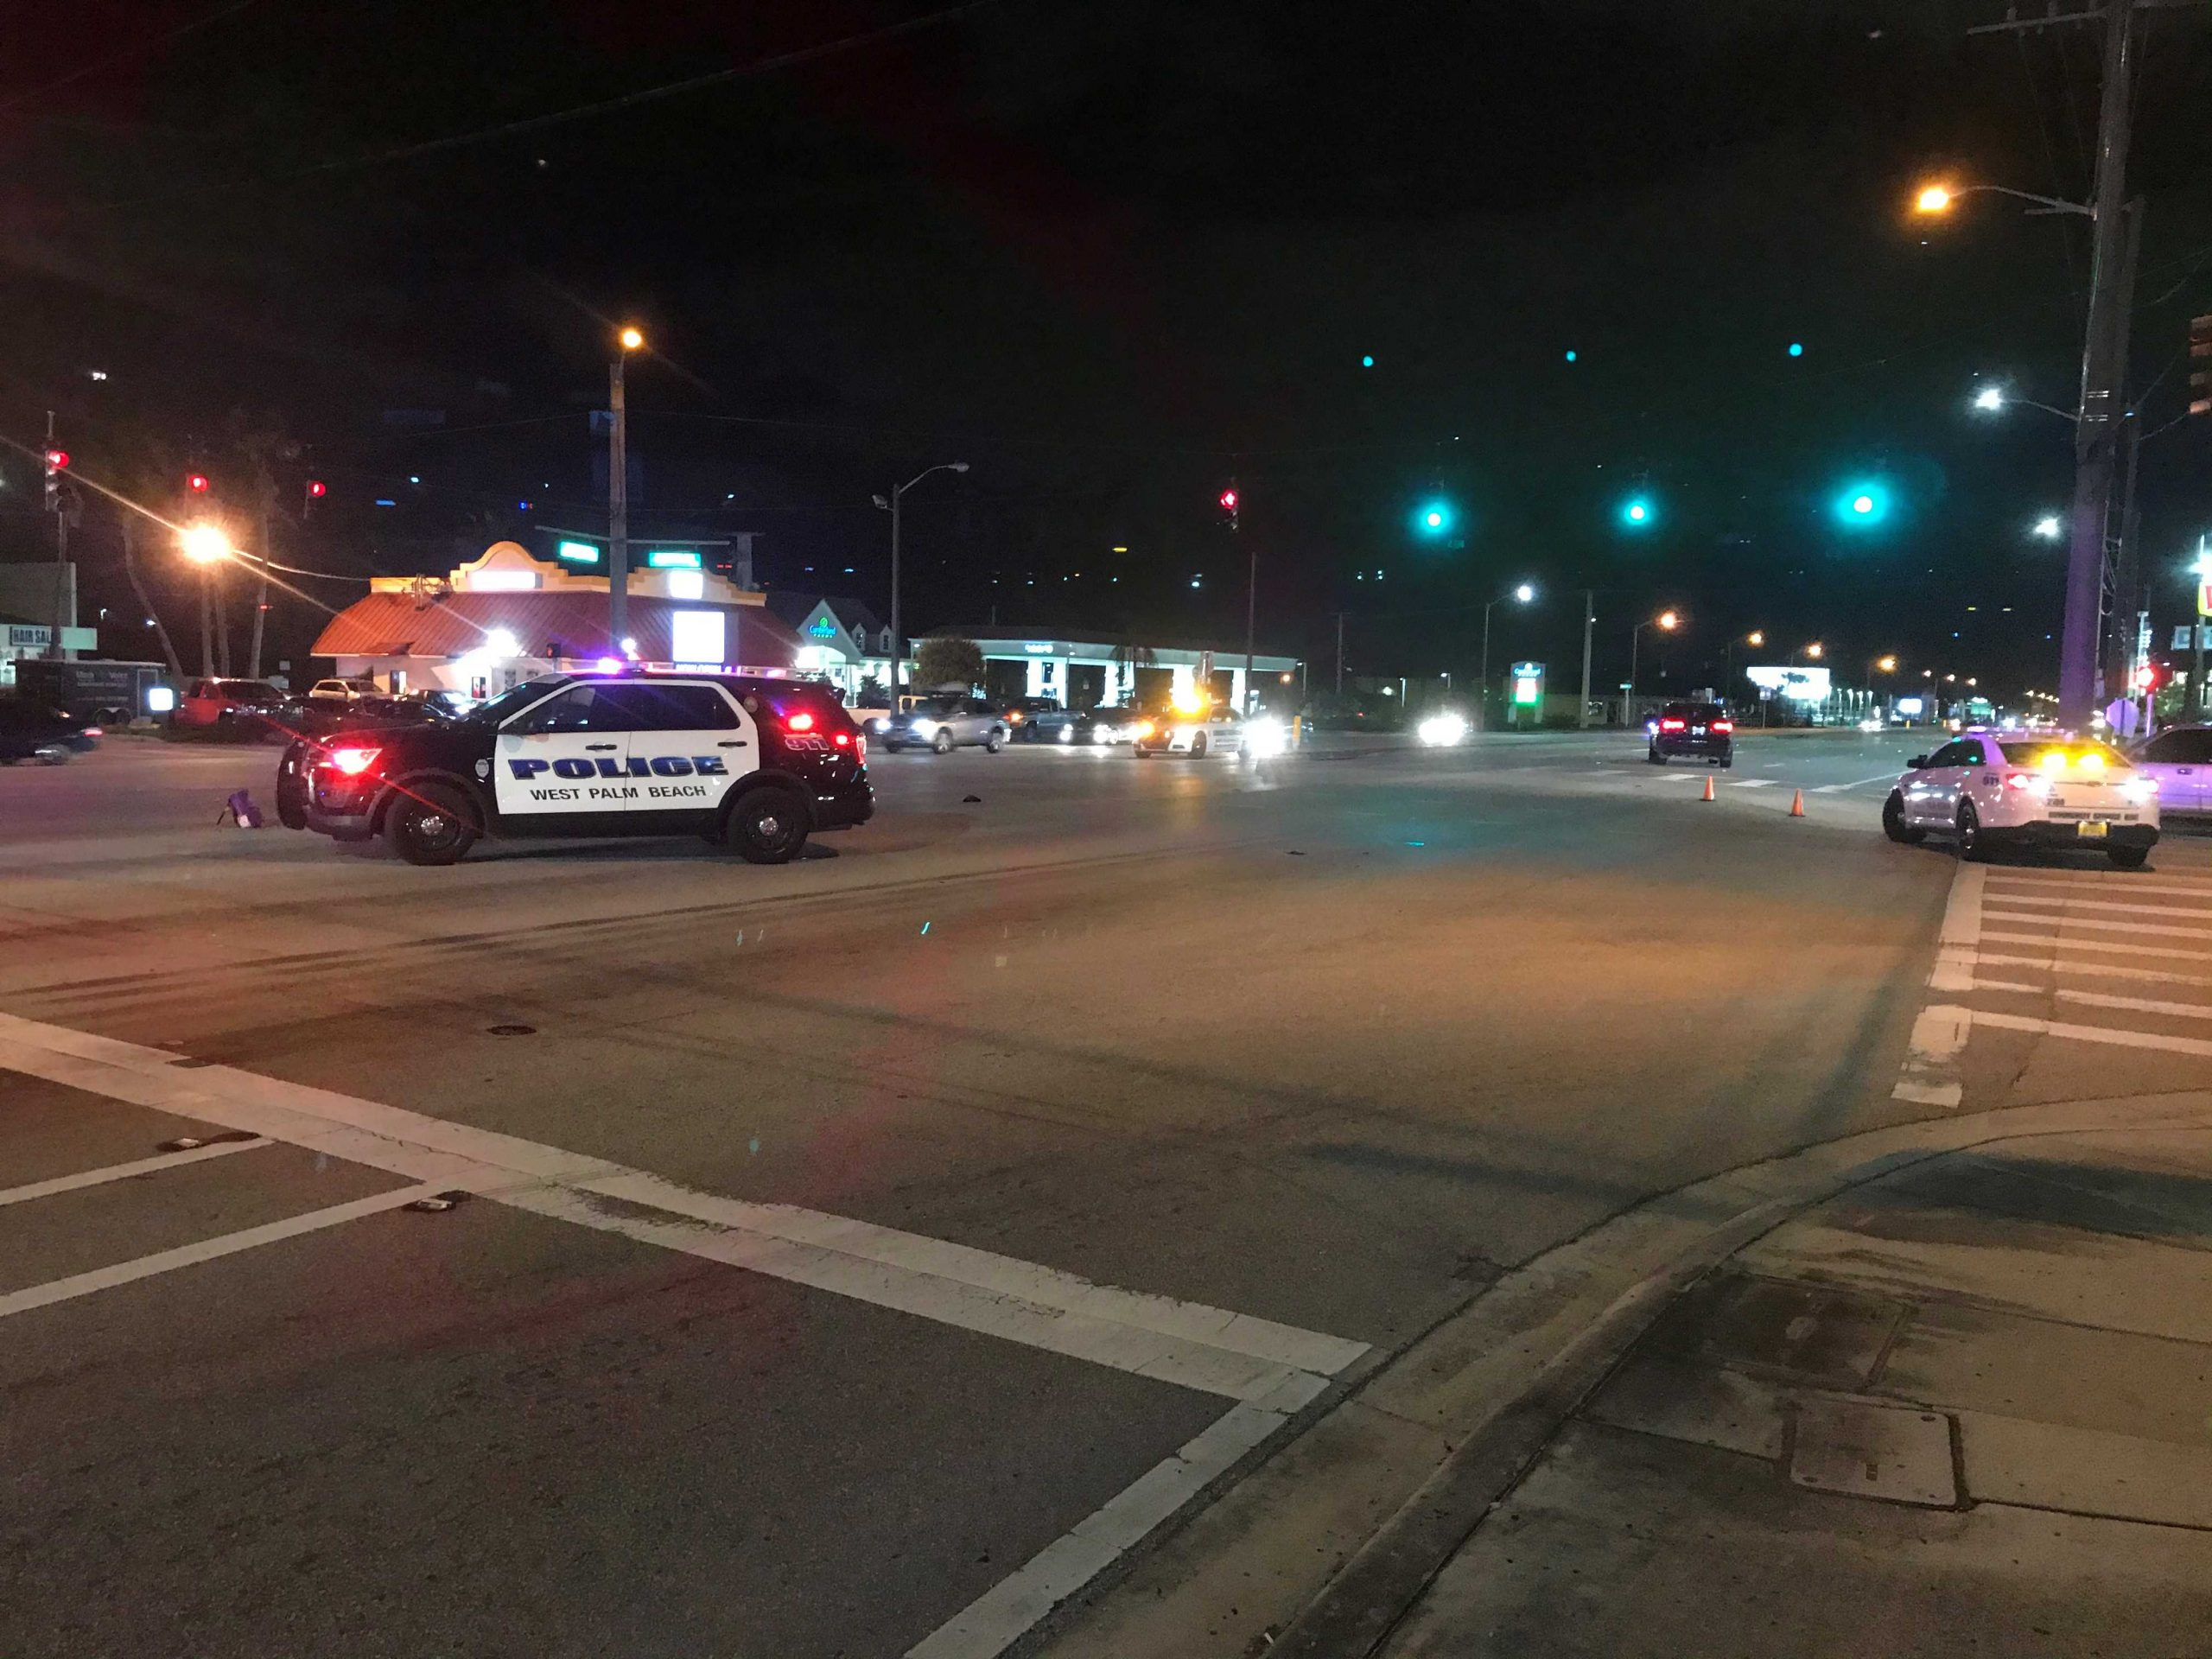 Fatal vehicle vs. pedestrian accident shuts down part of Okeechobee Blvd. in West Palm Beach